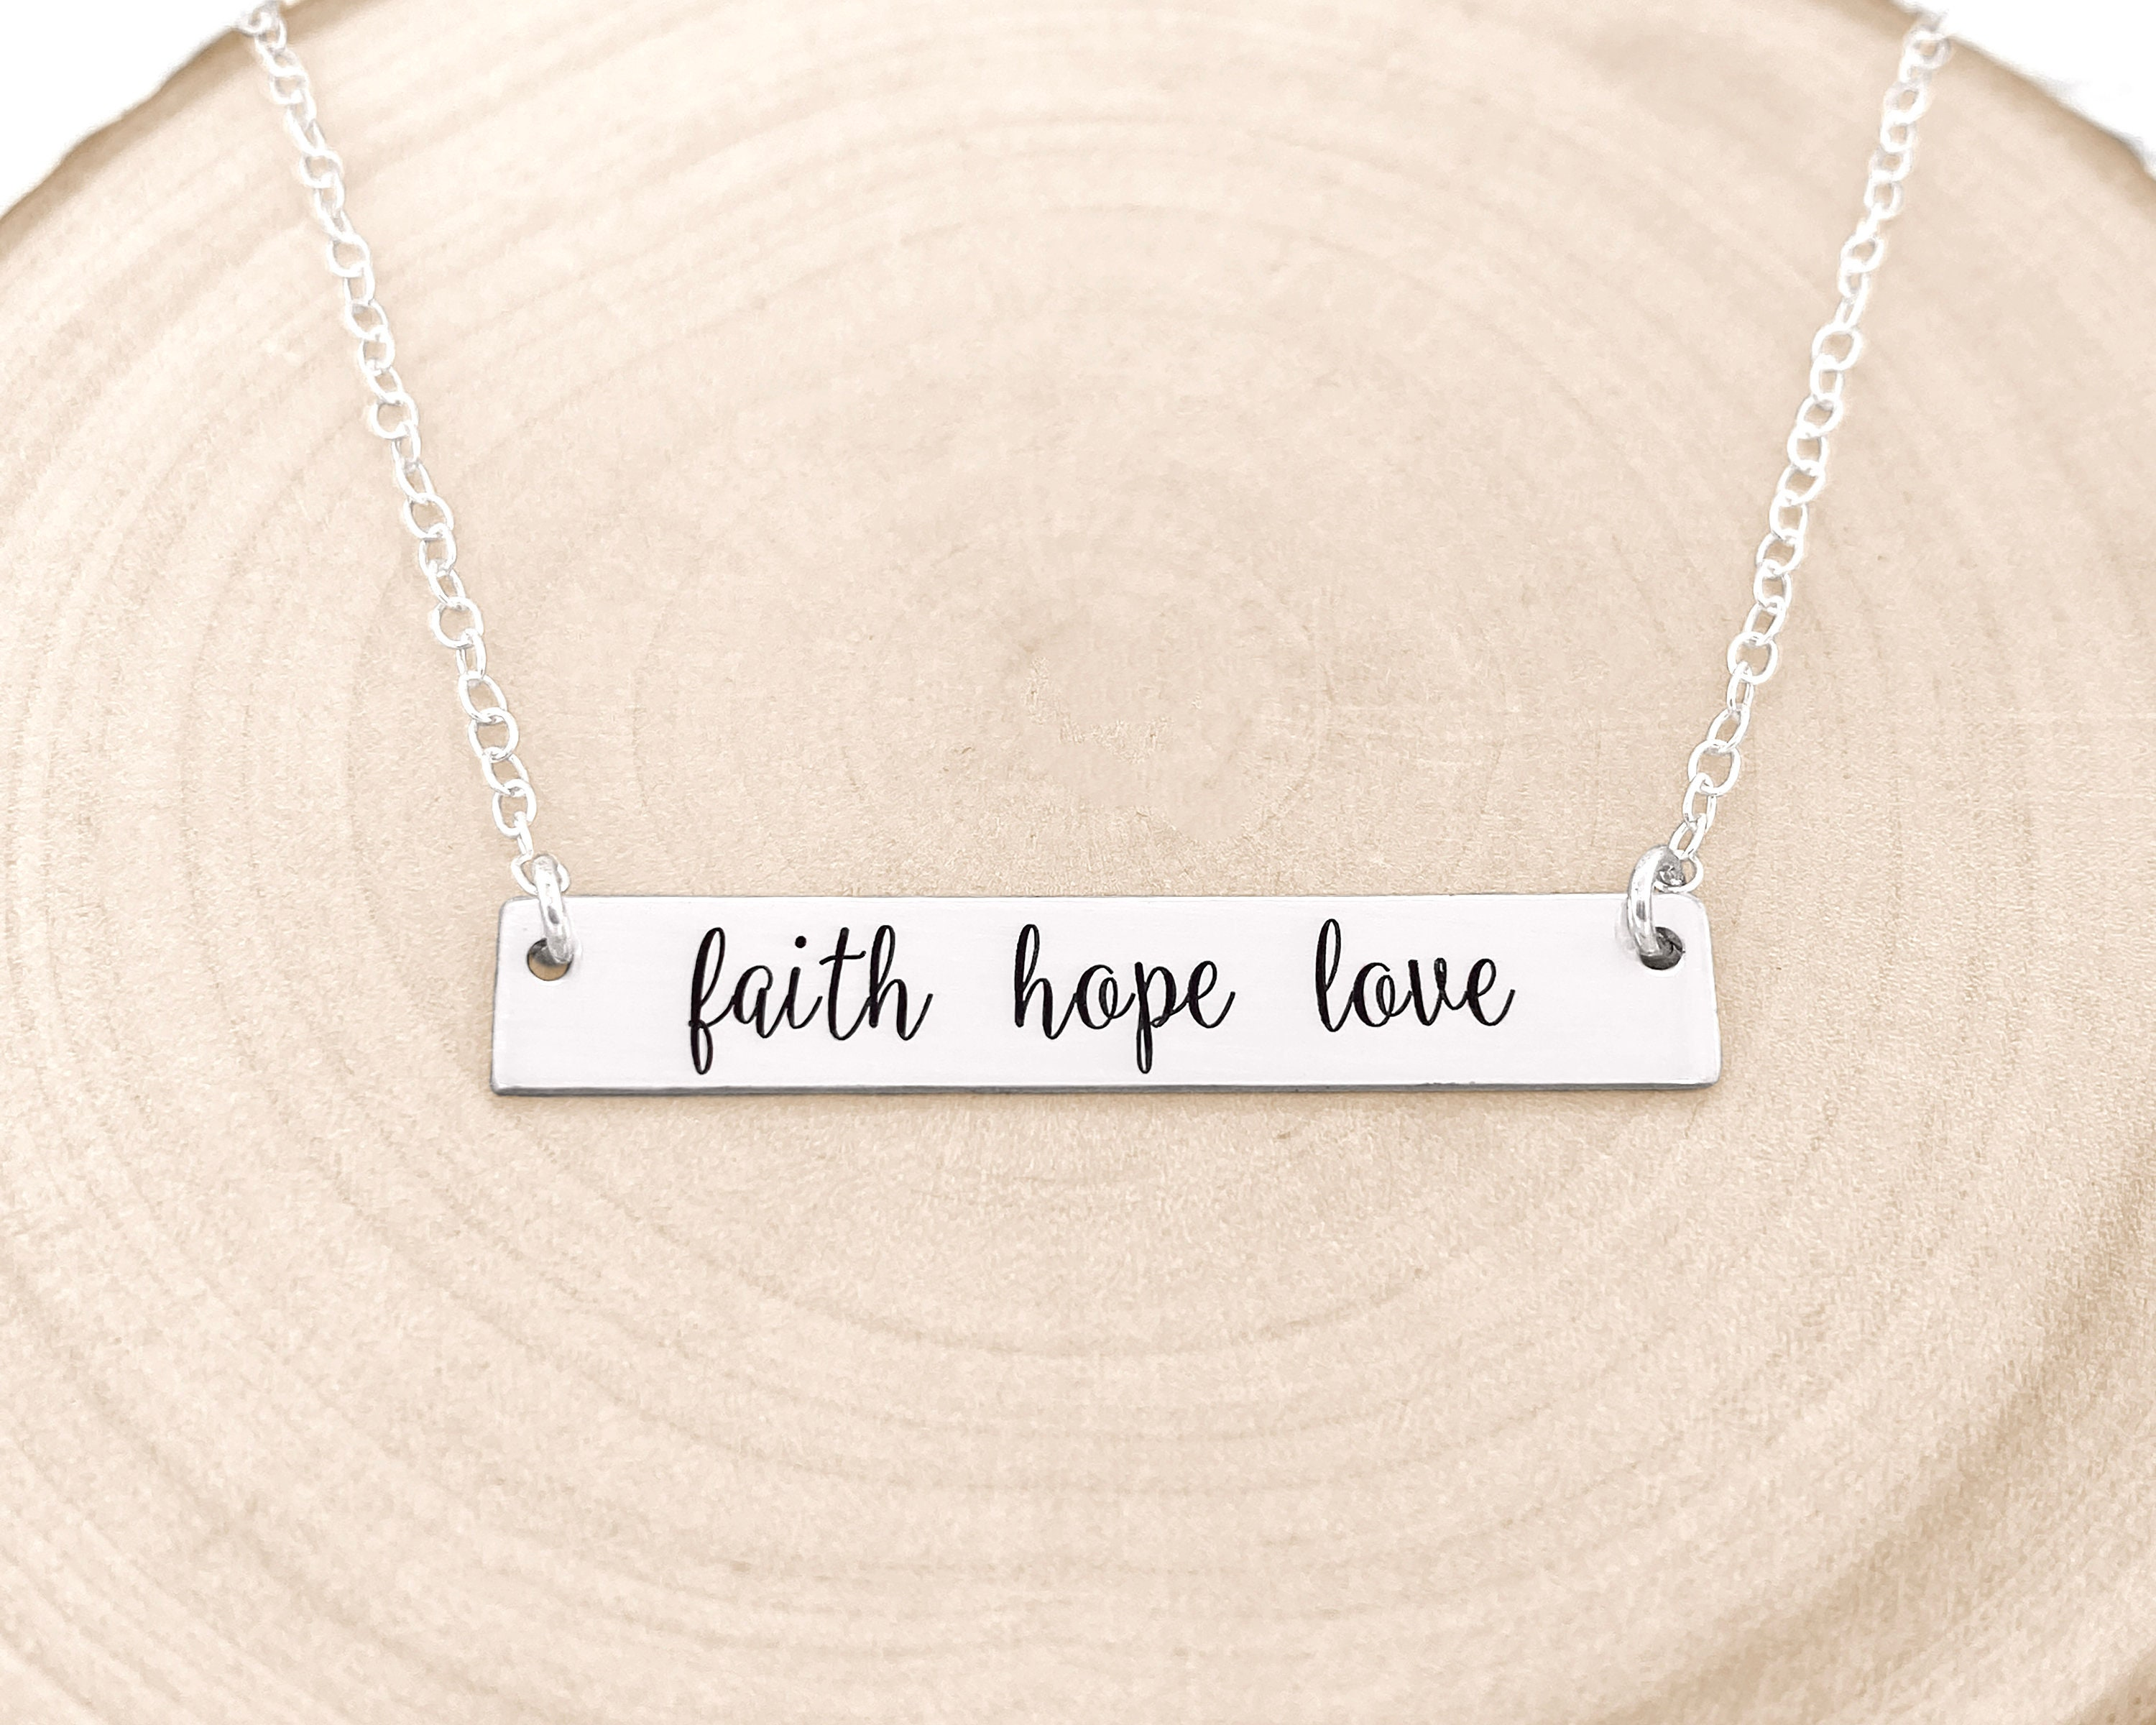 faith hope love custom Engraved Pendant Charm with Necklace Keychain Jewelry or Bags